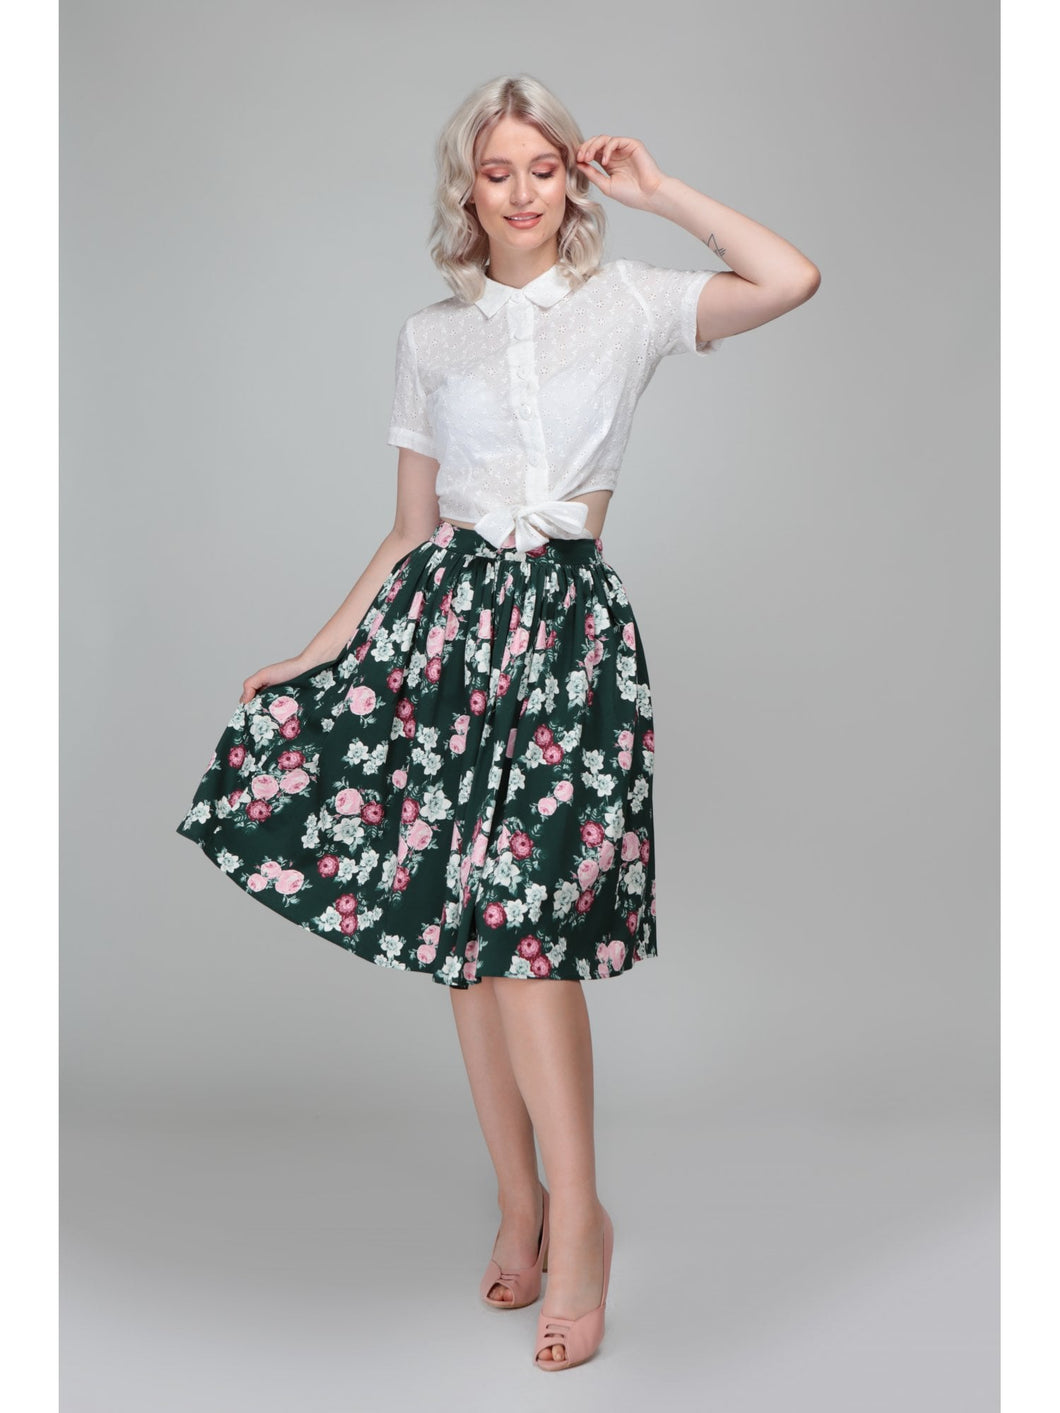 COLLECTIF- BLOOM SWING SKIRT